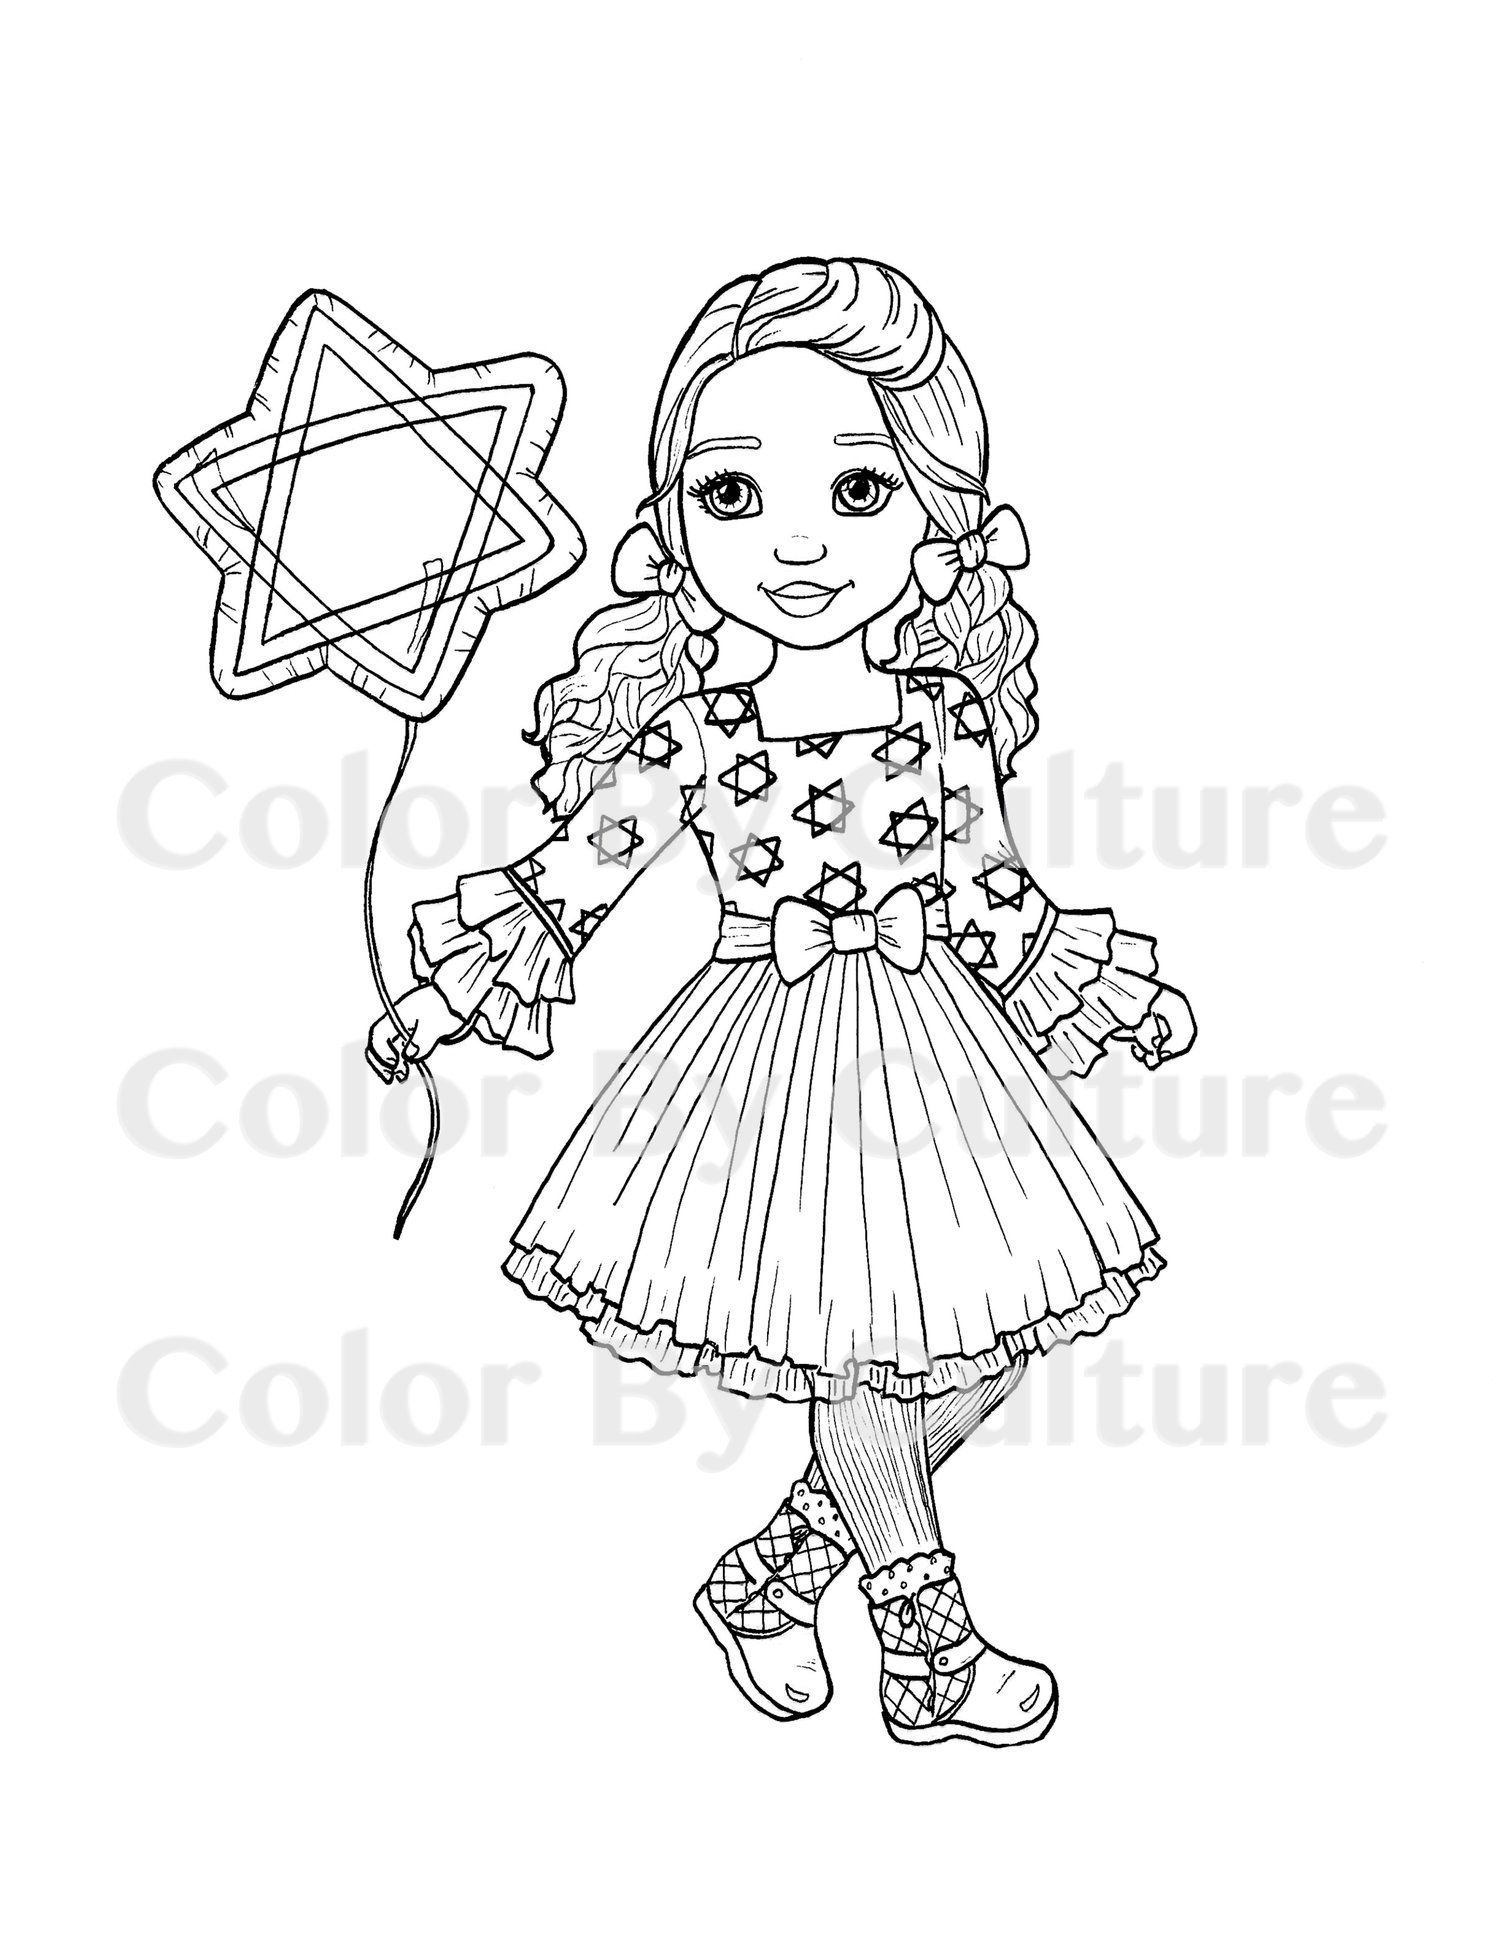 Hanukkah Girl Coloring Page Digital Stamp Coloring Pages For